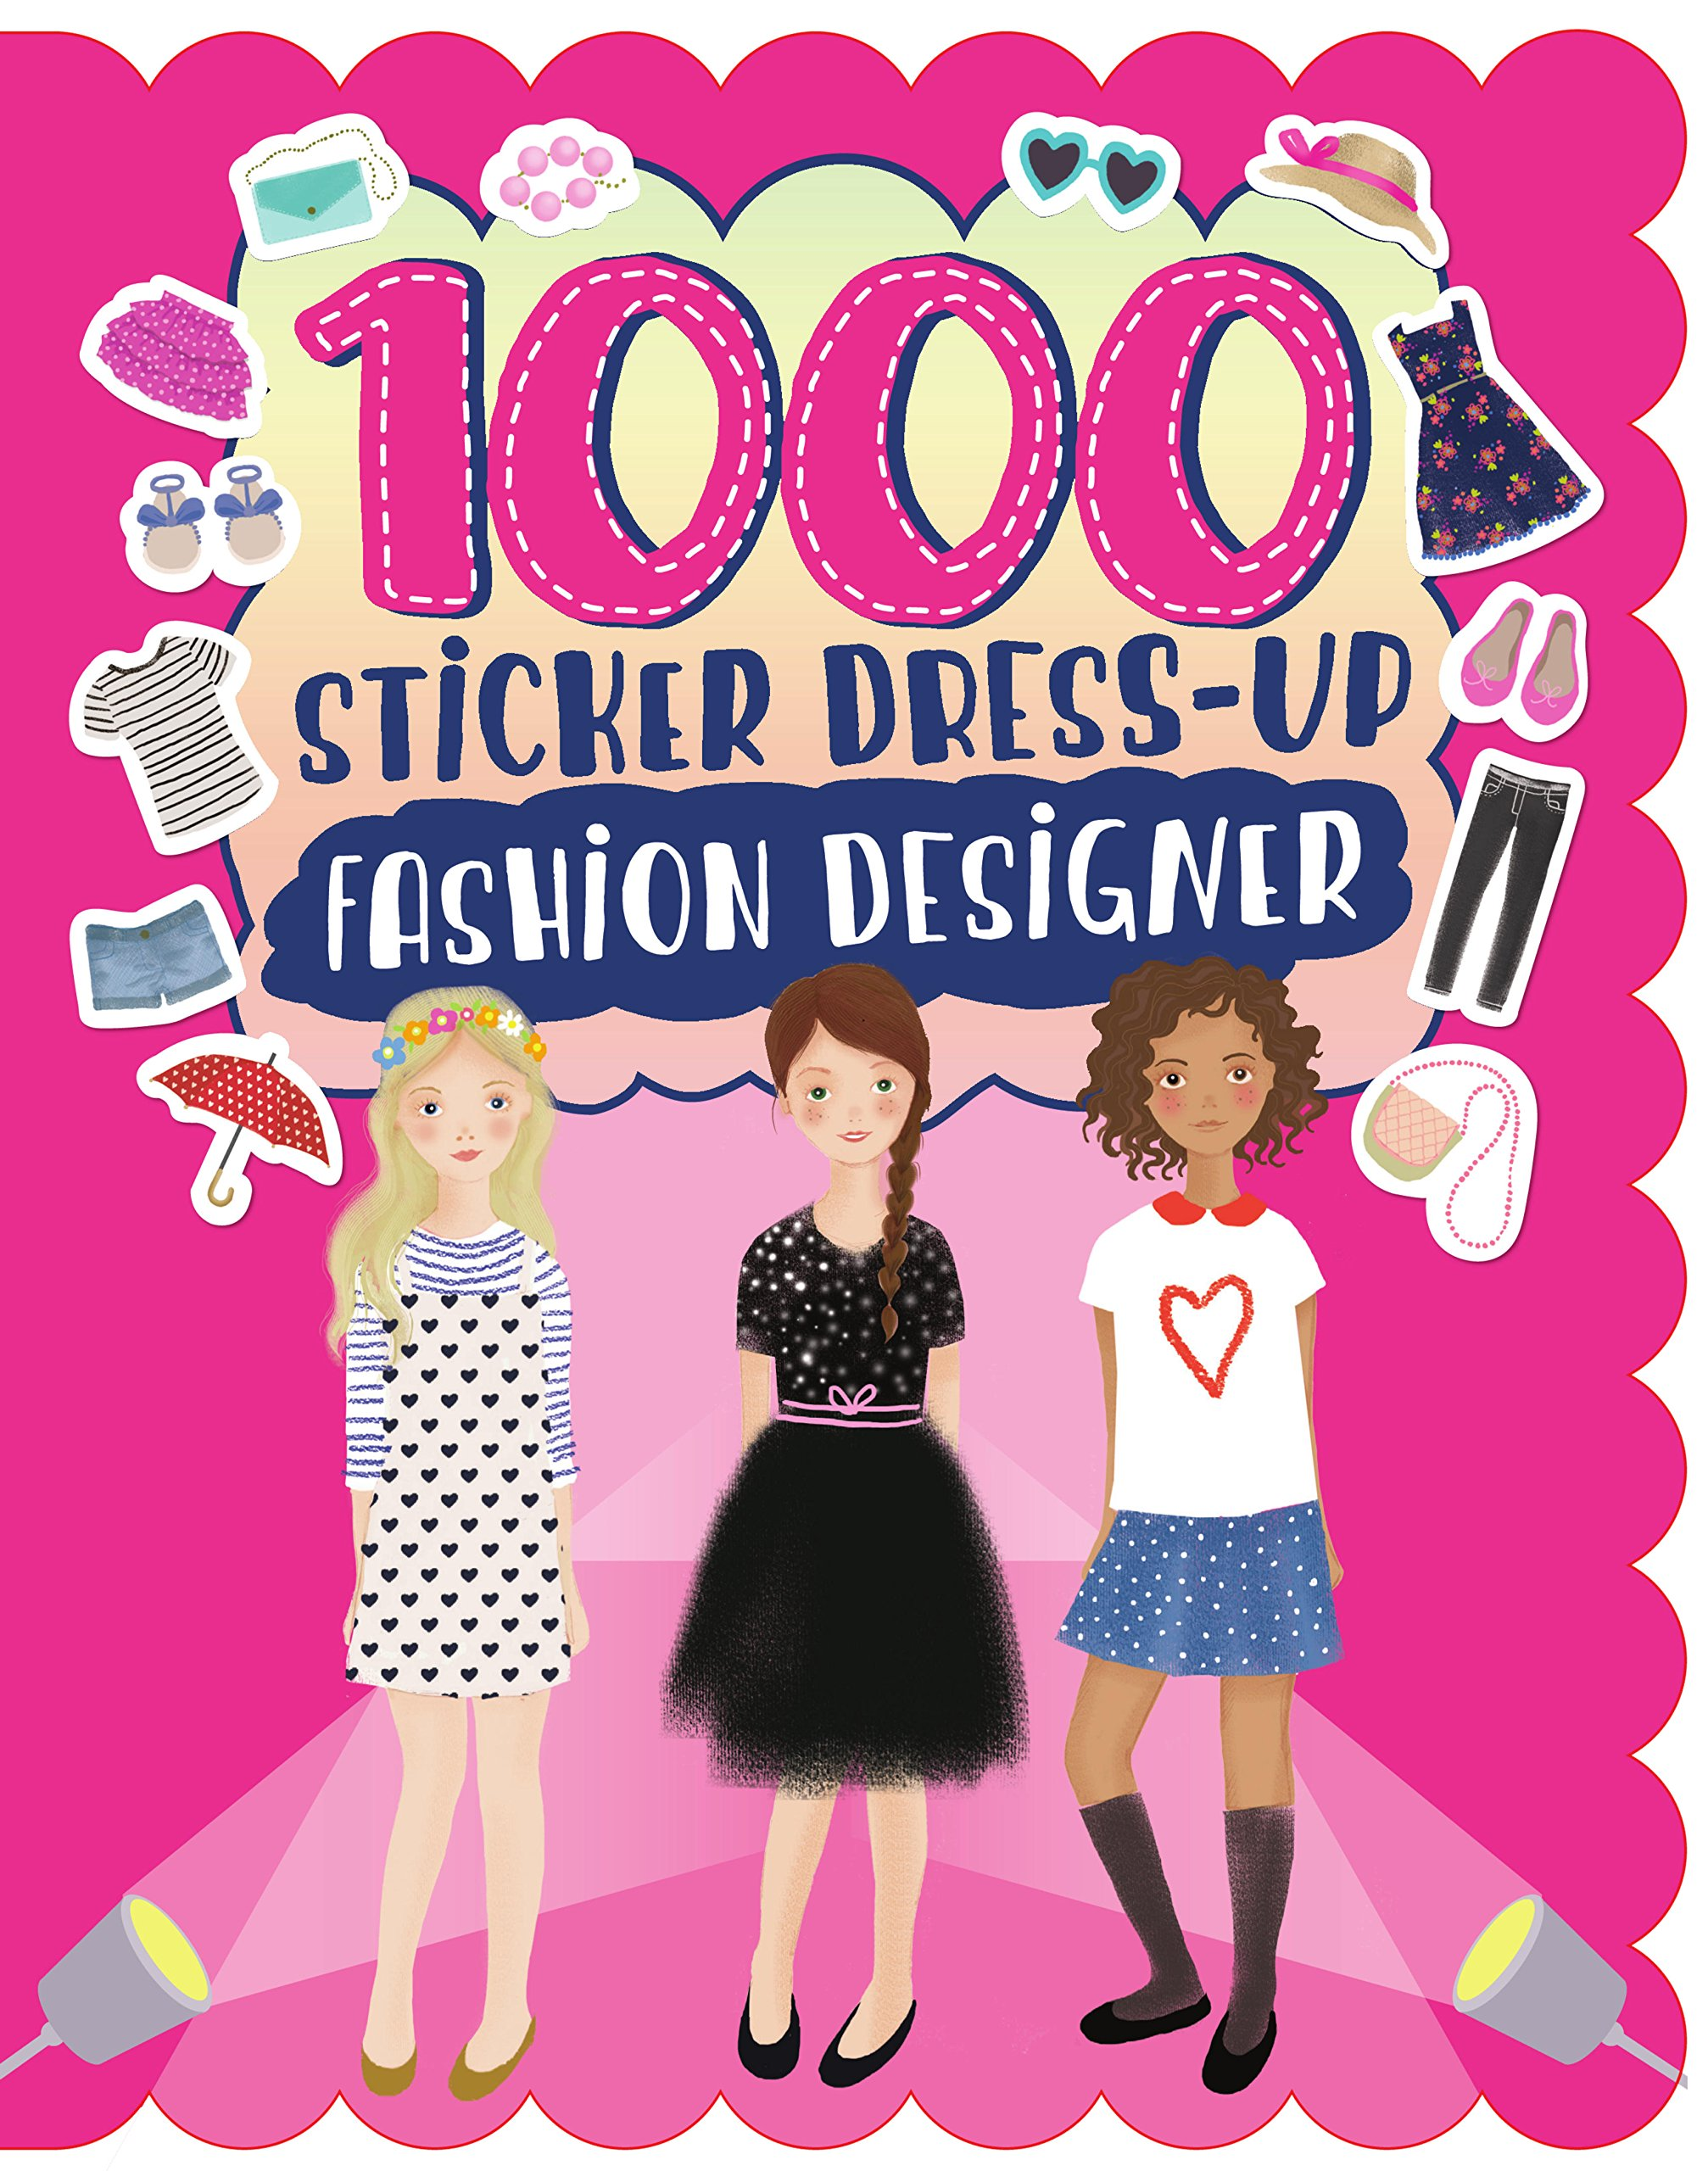 1000 Sticker Dress Up Fashion Designer Parragon Books Ltd 9781474823227 Amazon Com Books